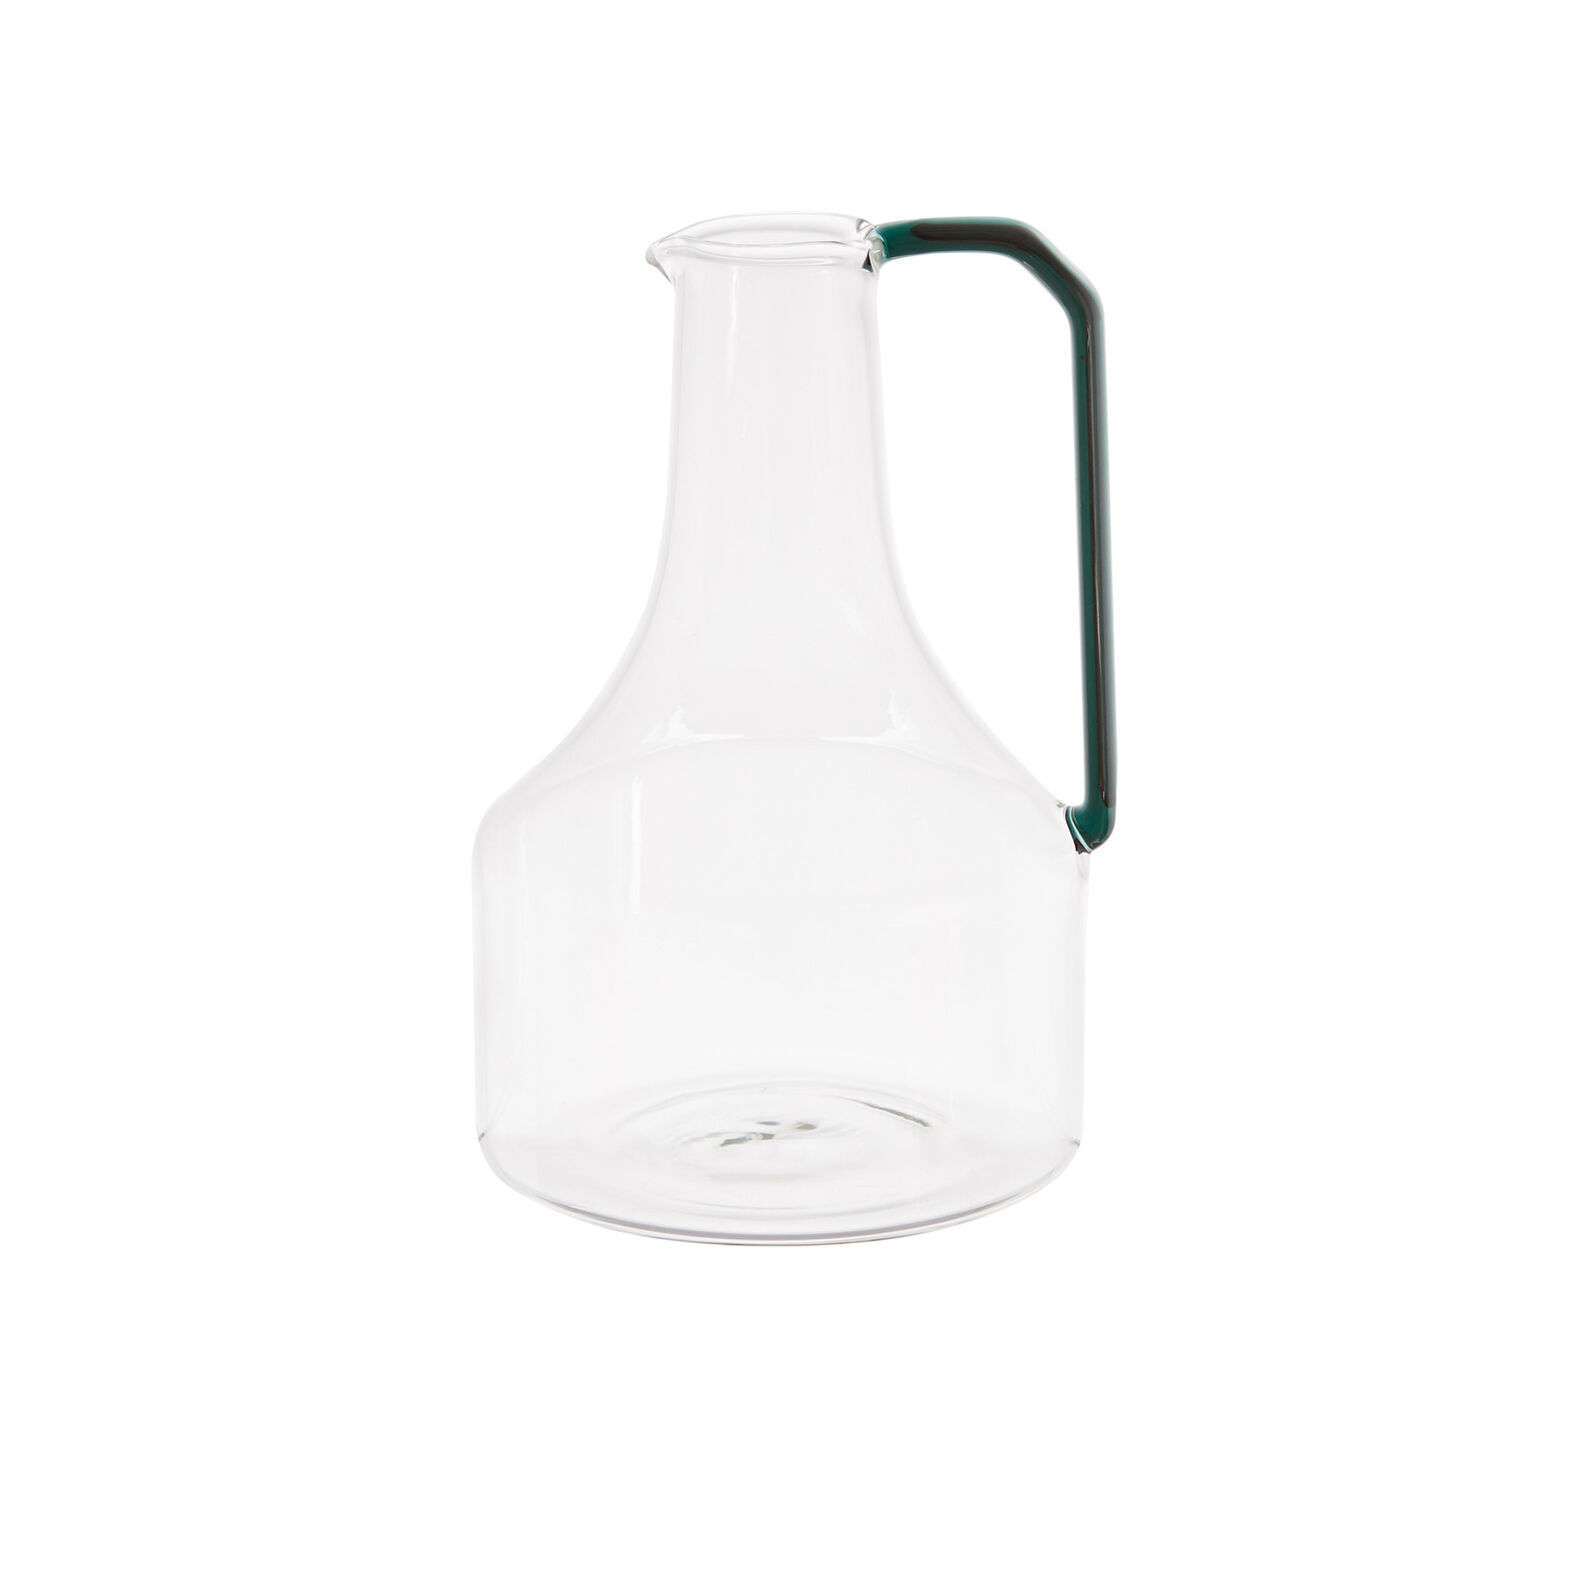 Glass carafe in coloured handle